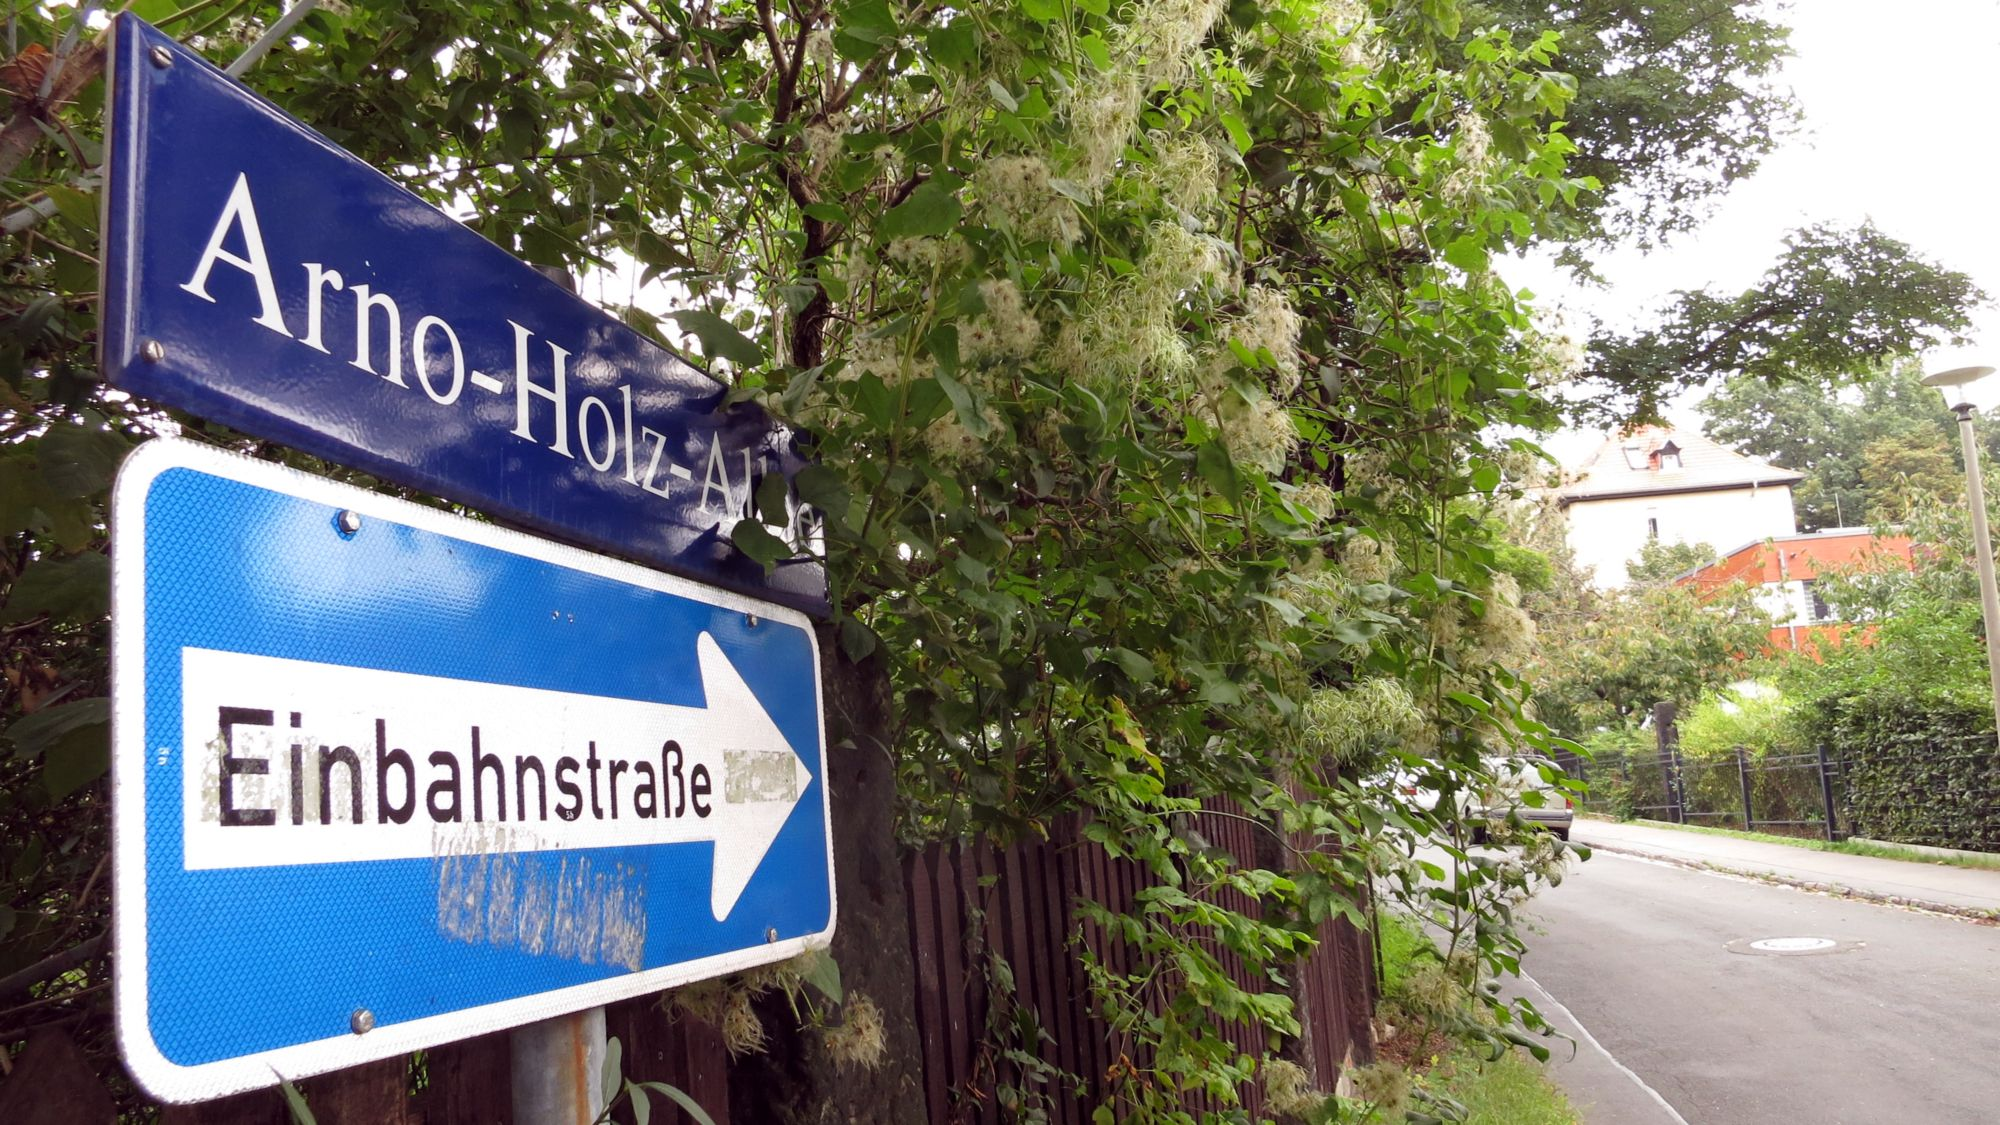 Arno-Holz-Allee